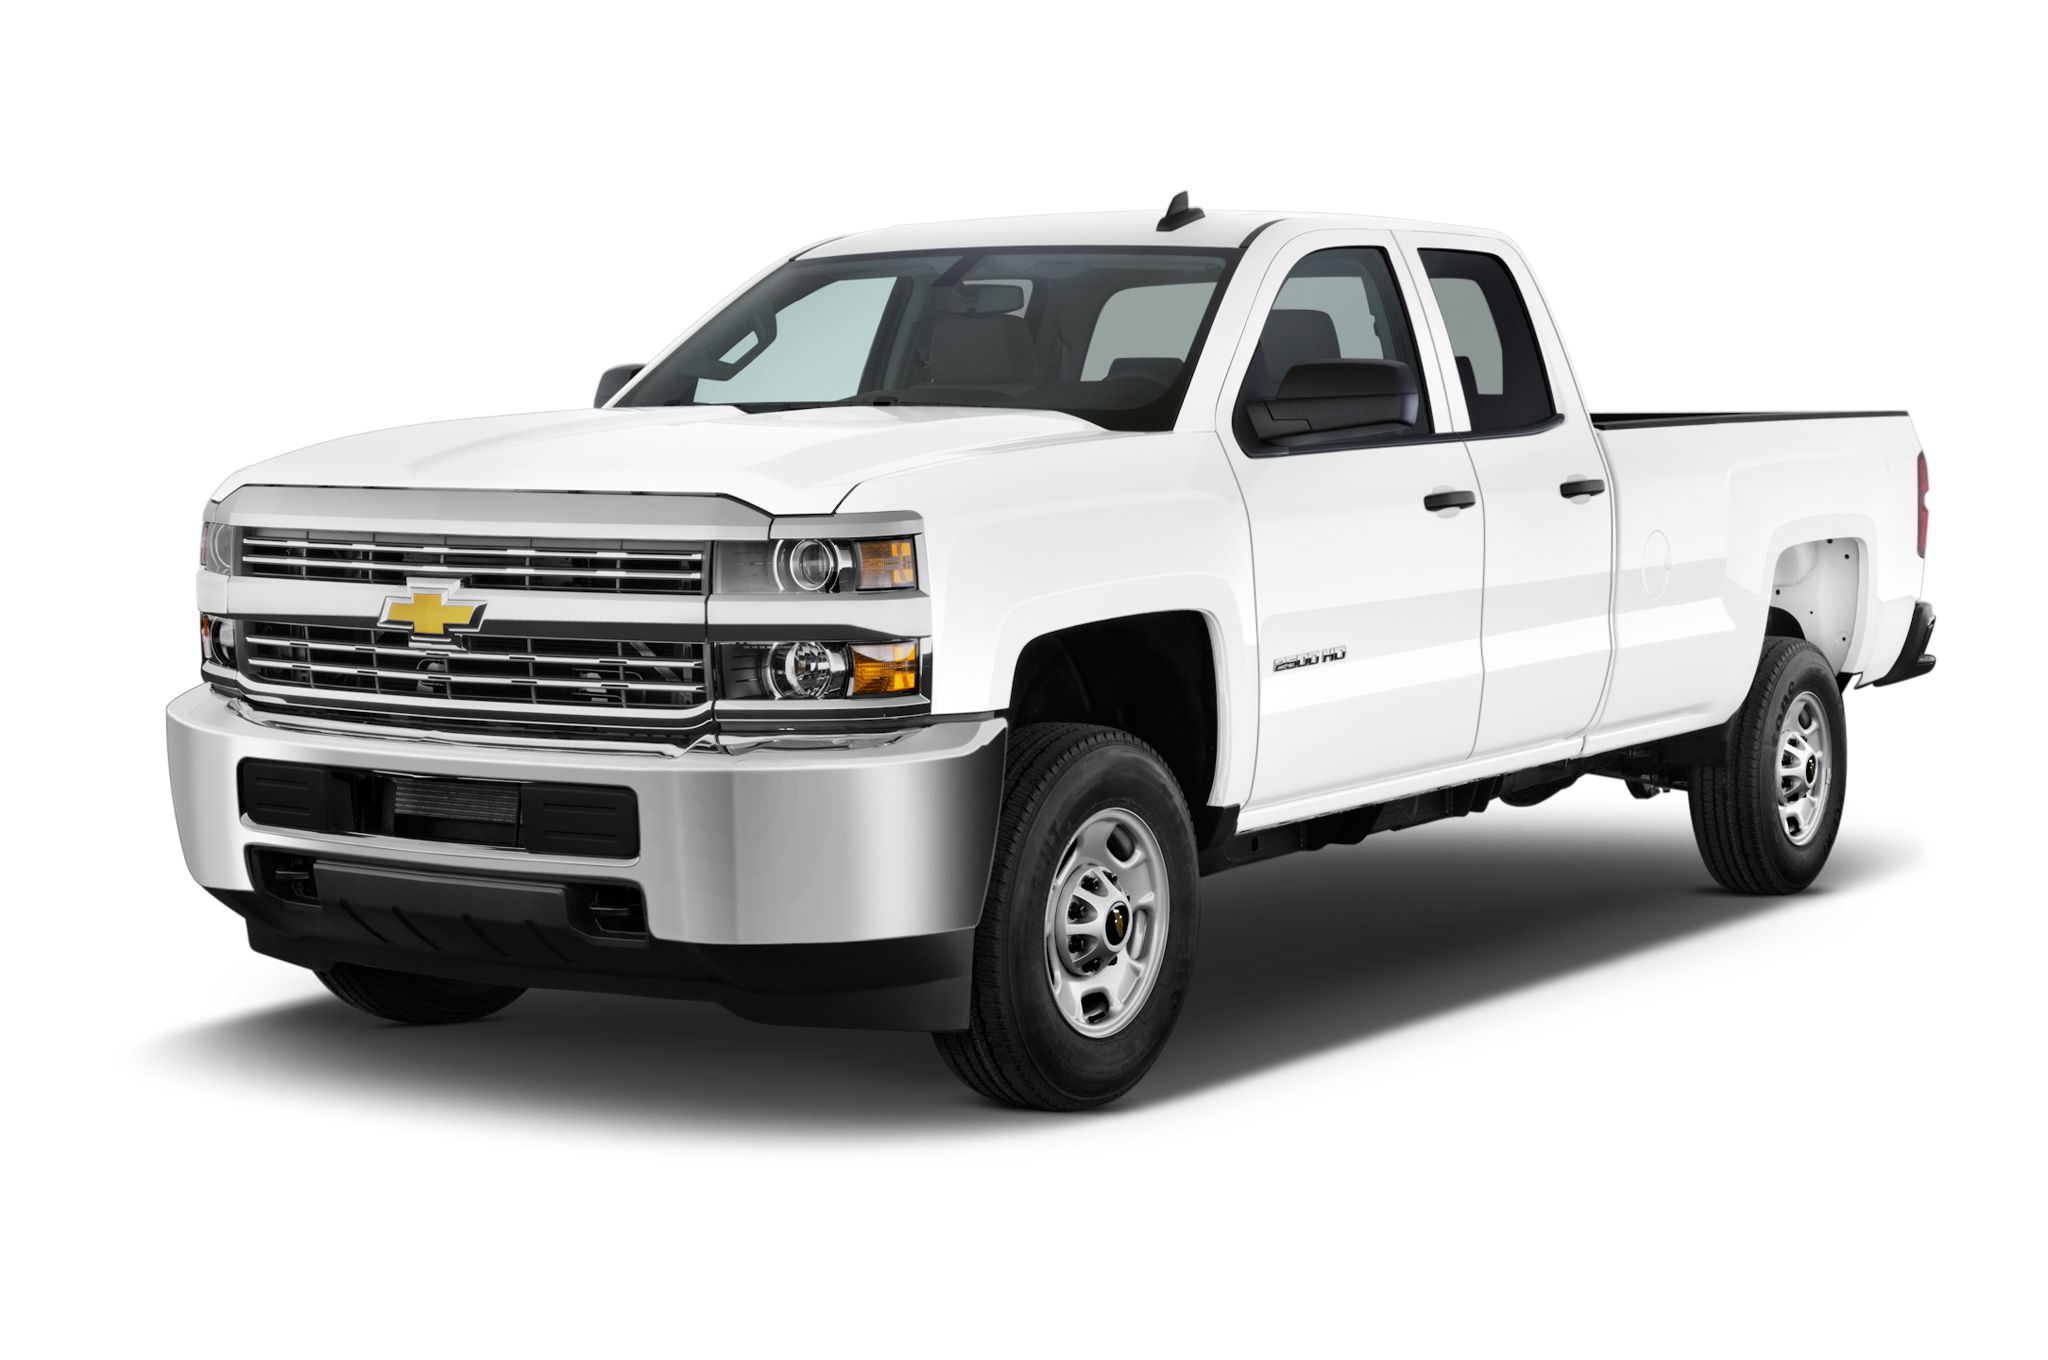 Silverado drawing low truck. Chevrolet hd adds